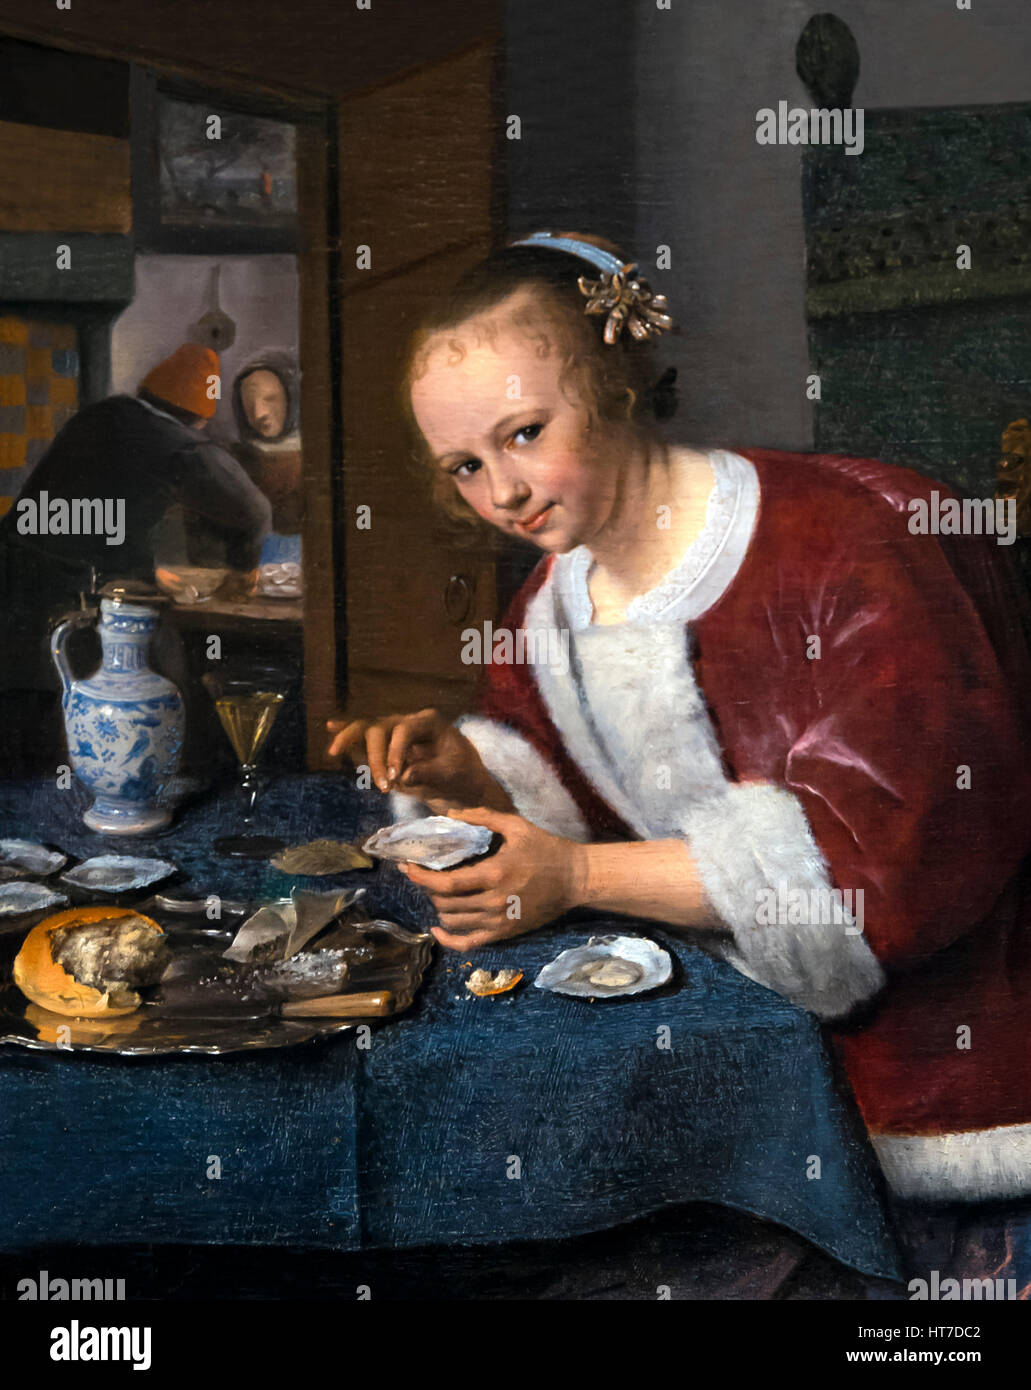 Girl Eating Oysters, by Jan Steen, circa 1660, Royal Art Gallery, Mauritshuis Museum, The Hague, Netherlands, Europe - Stock Image